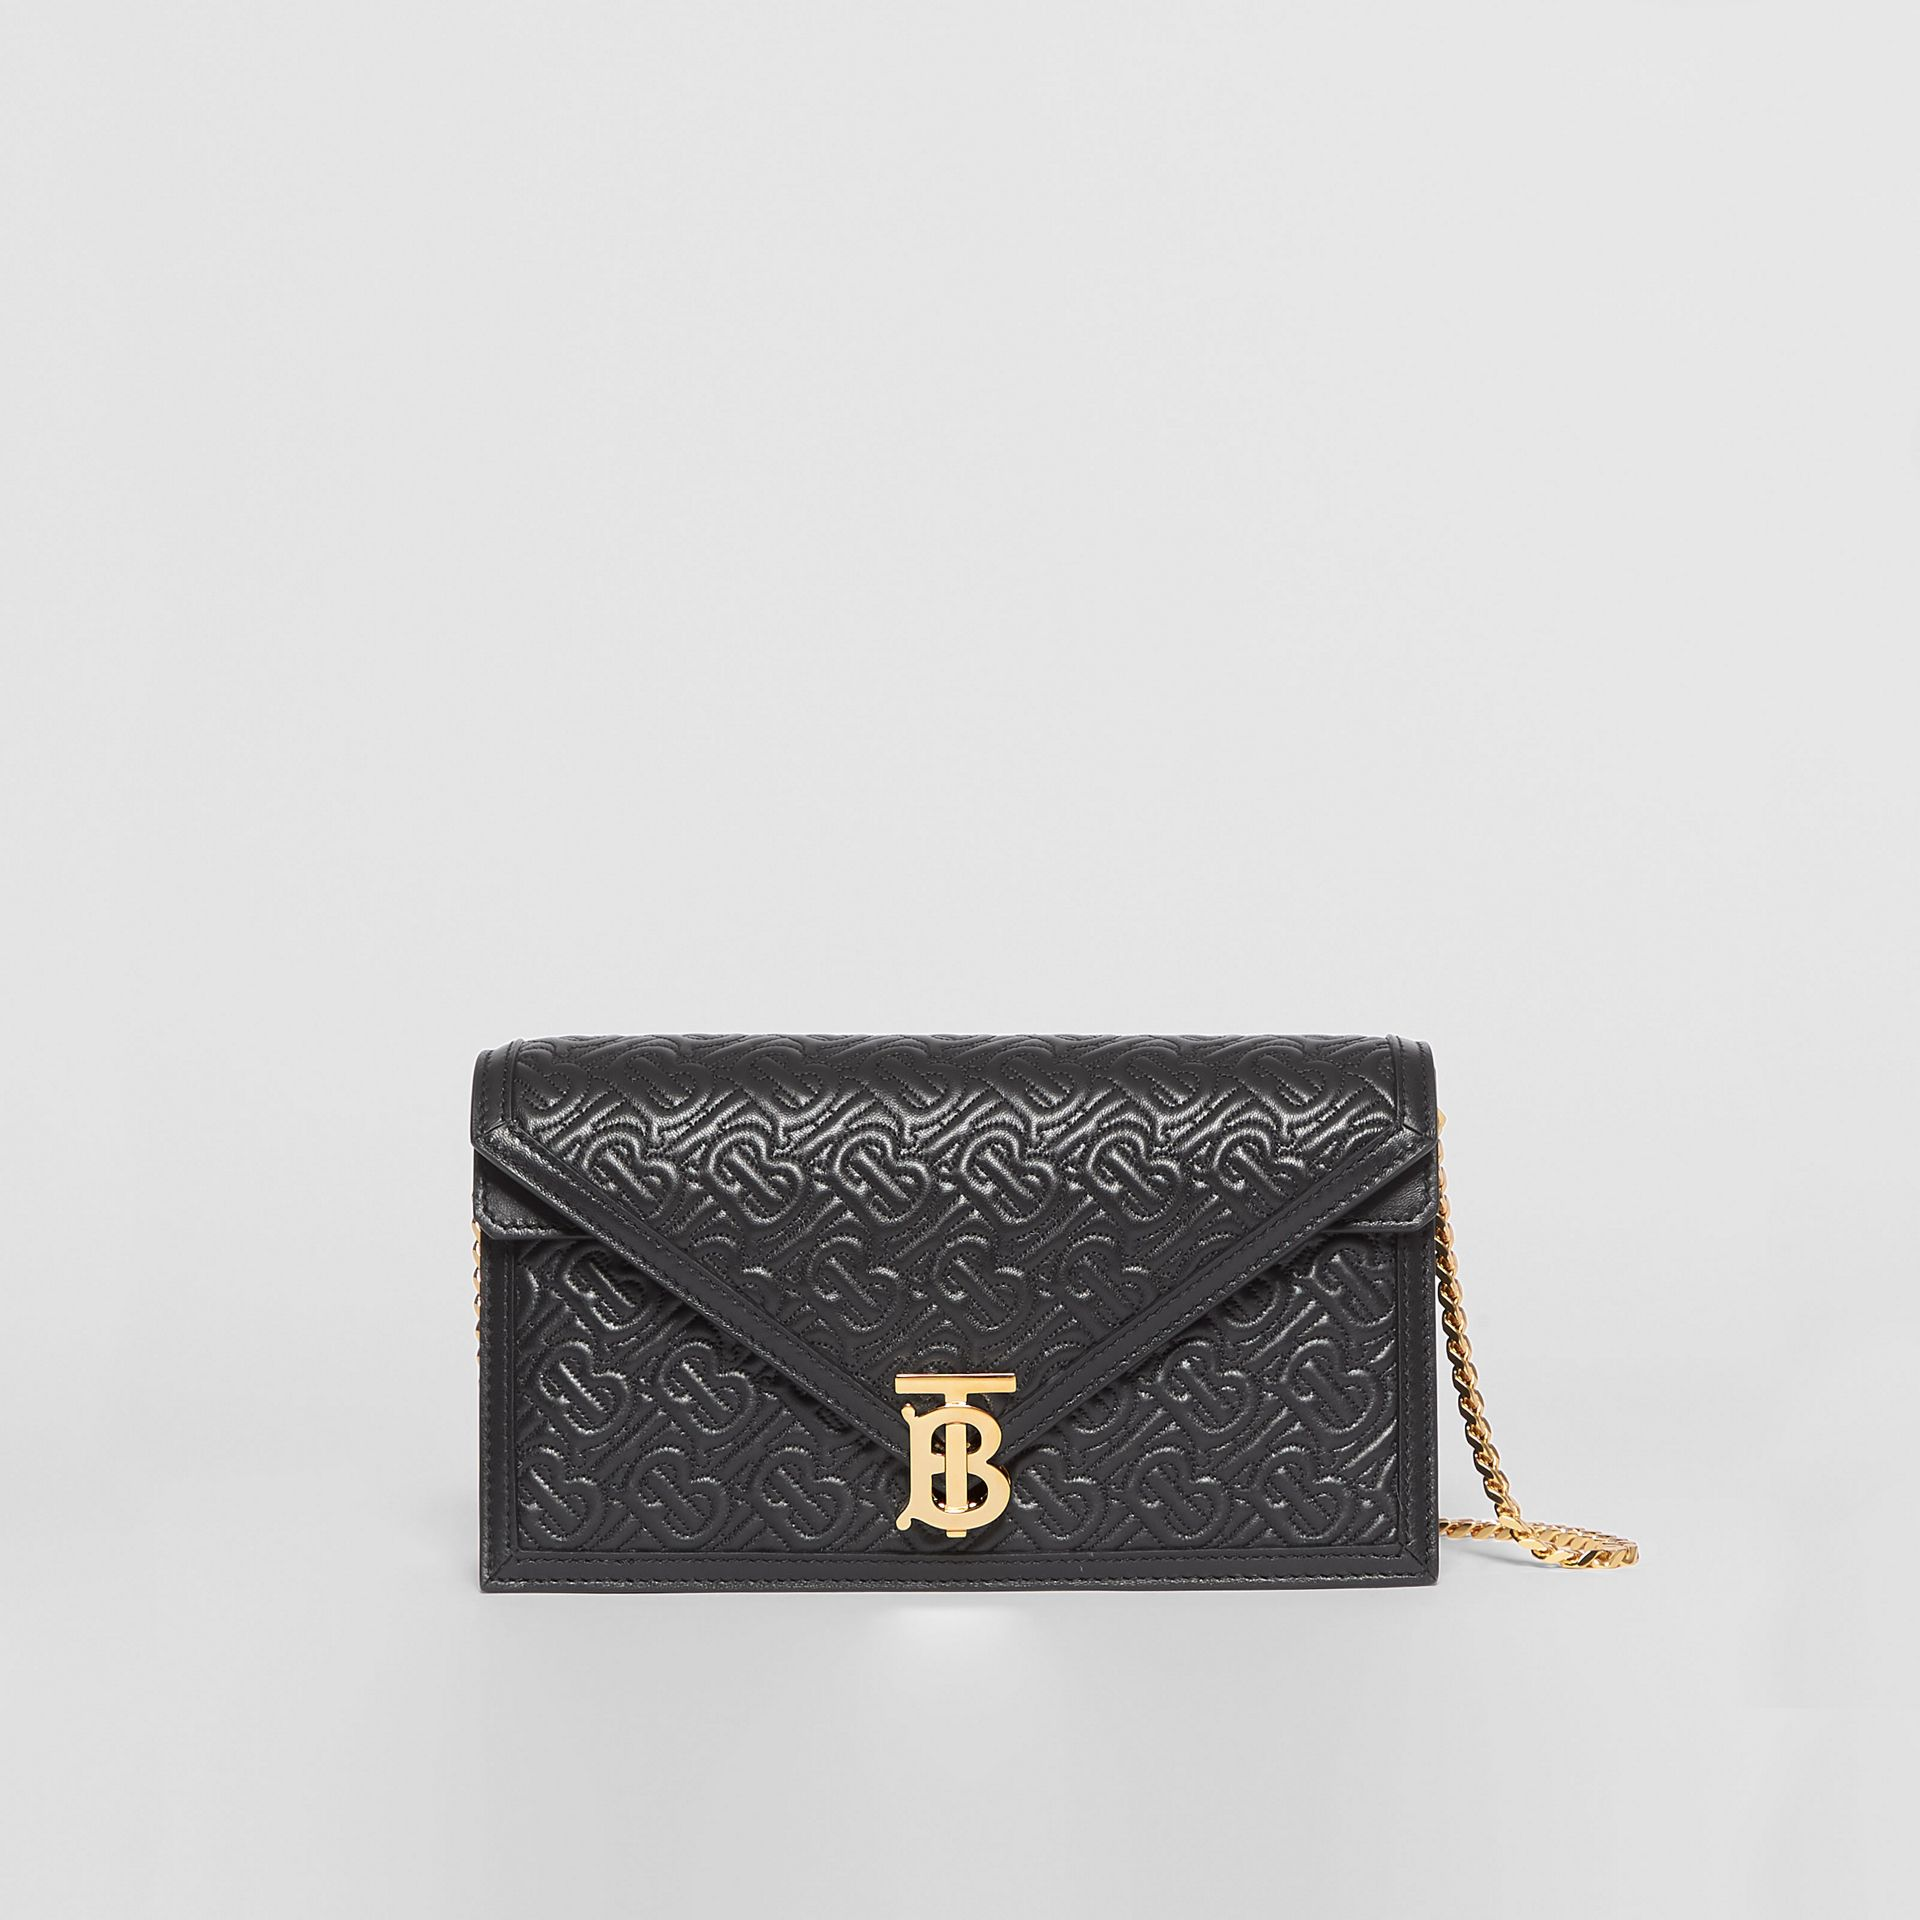 Small Quilted Monogram TB Envelope Clutch in Black - Women | Burberry United States - gallery image 0